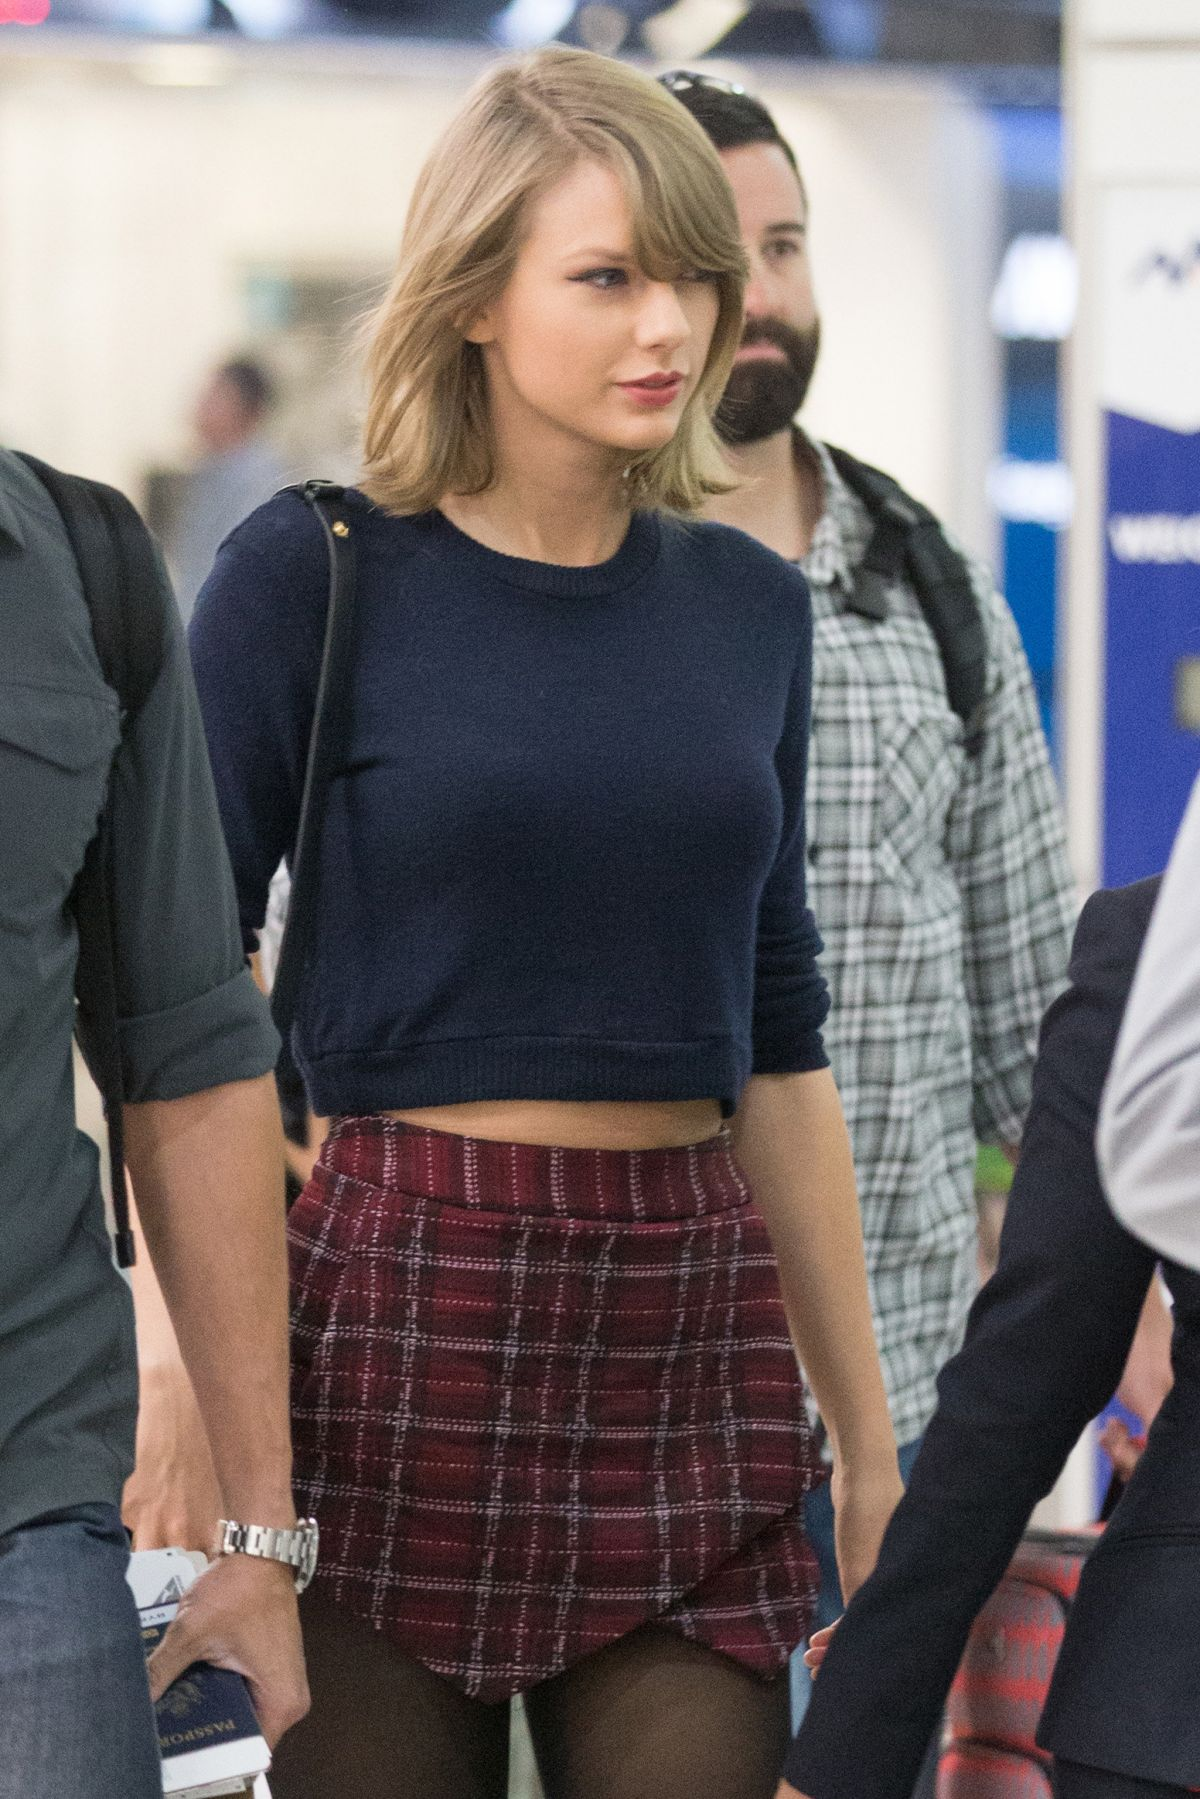 TAYLOR SWIFT at Melbourne Airport 12/13/2015